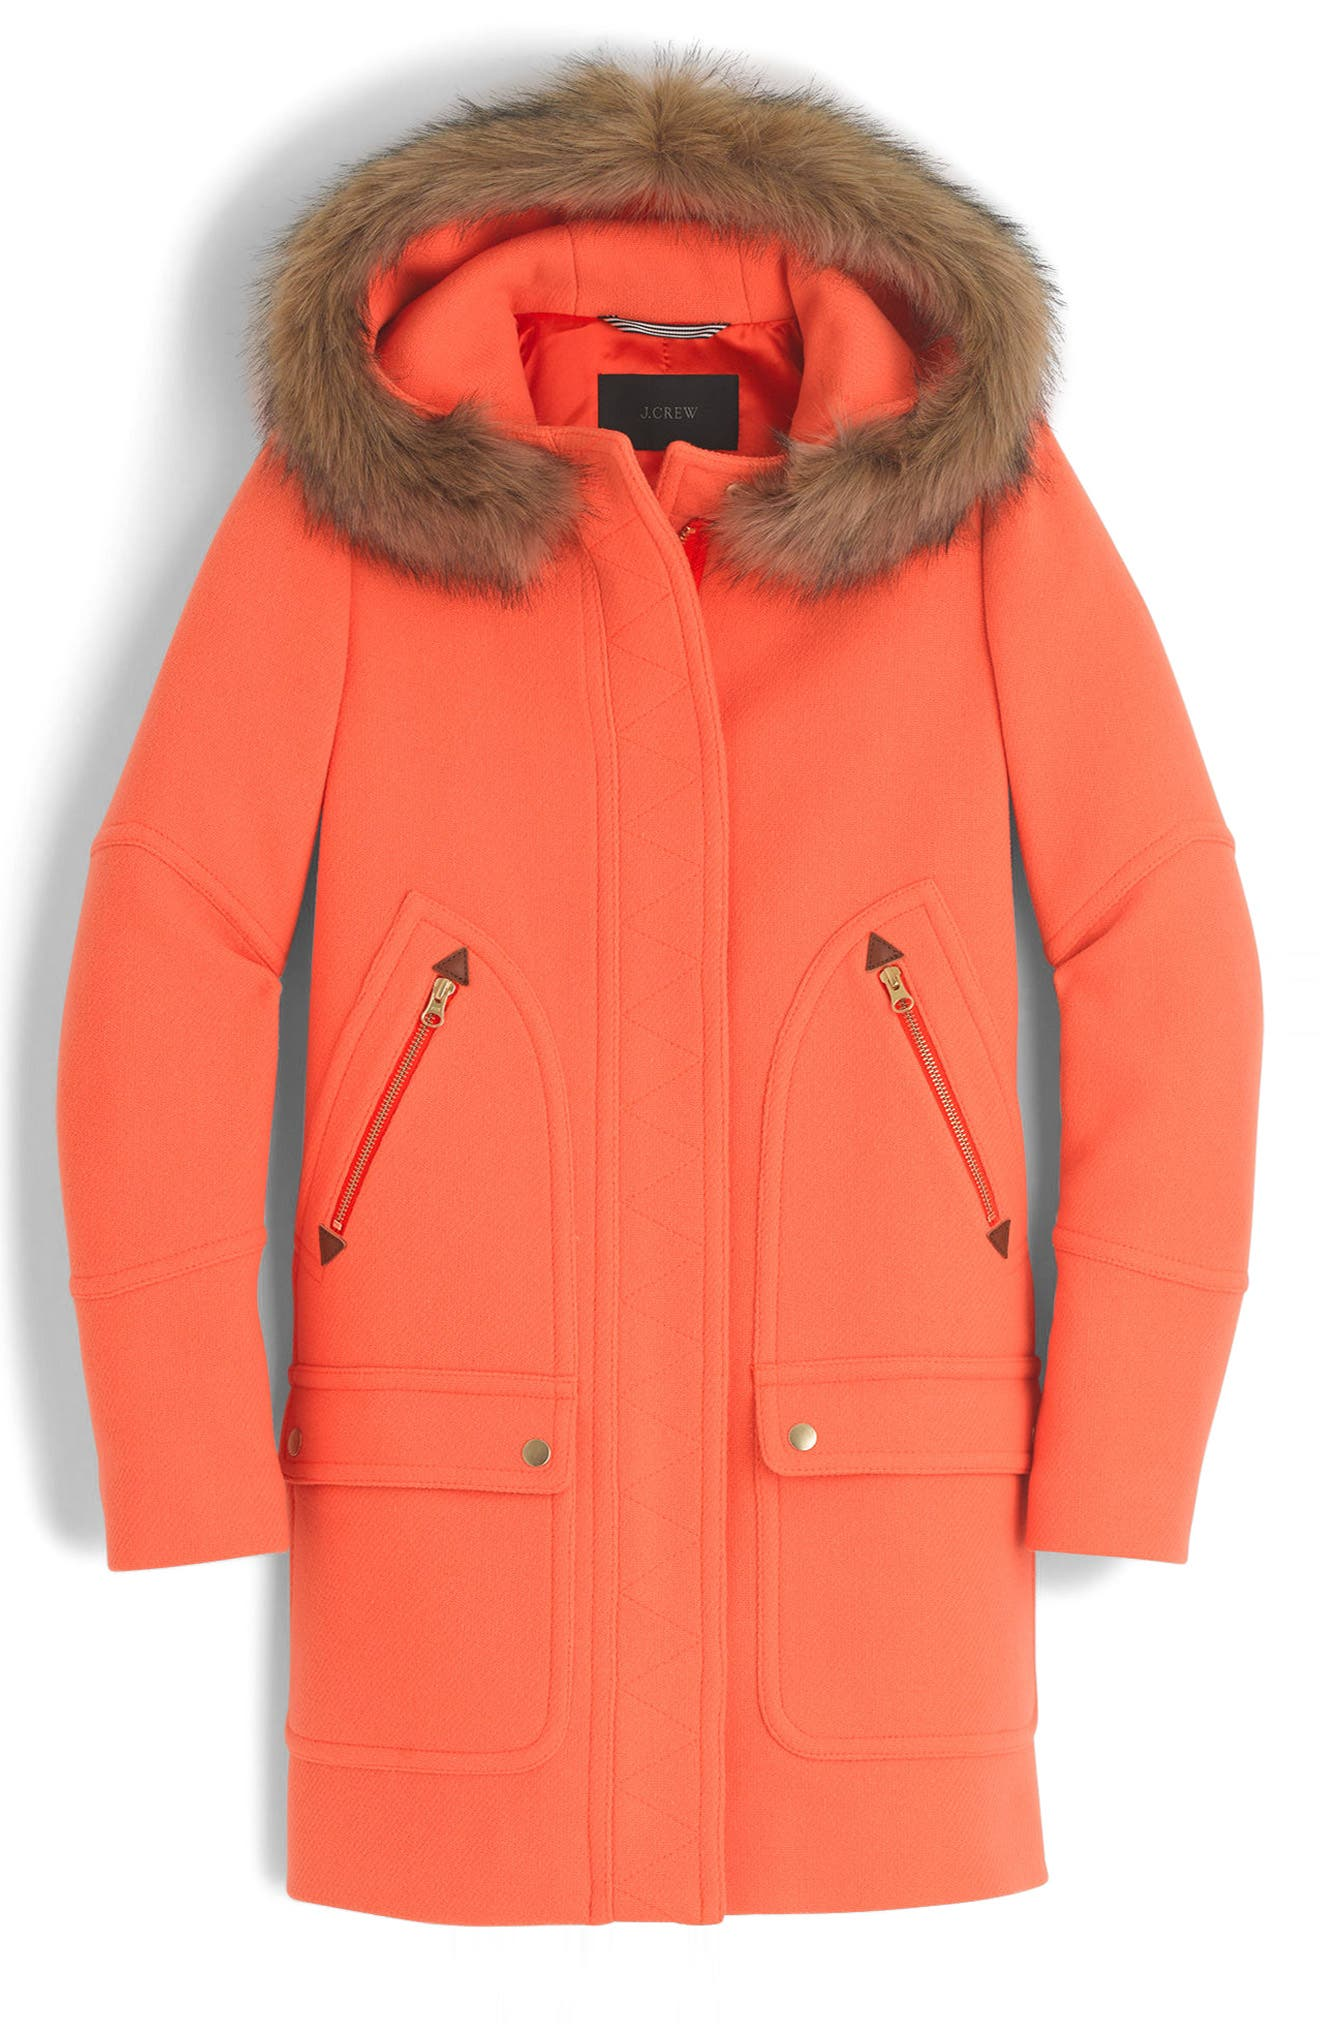 Chateau Stadium Cloth Parka with Faux Fur Trim,                             Main thumbnail 1, color,                             Neon Tangelo